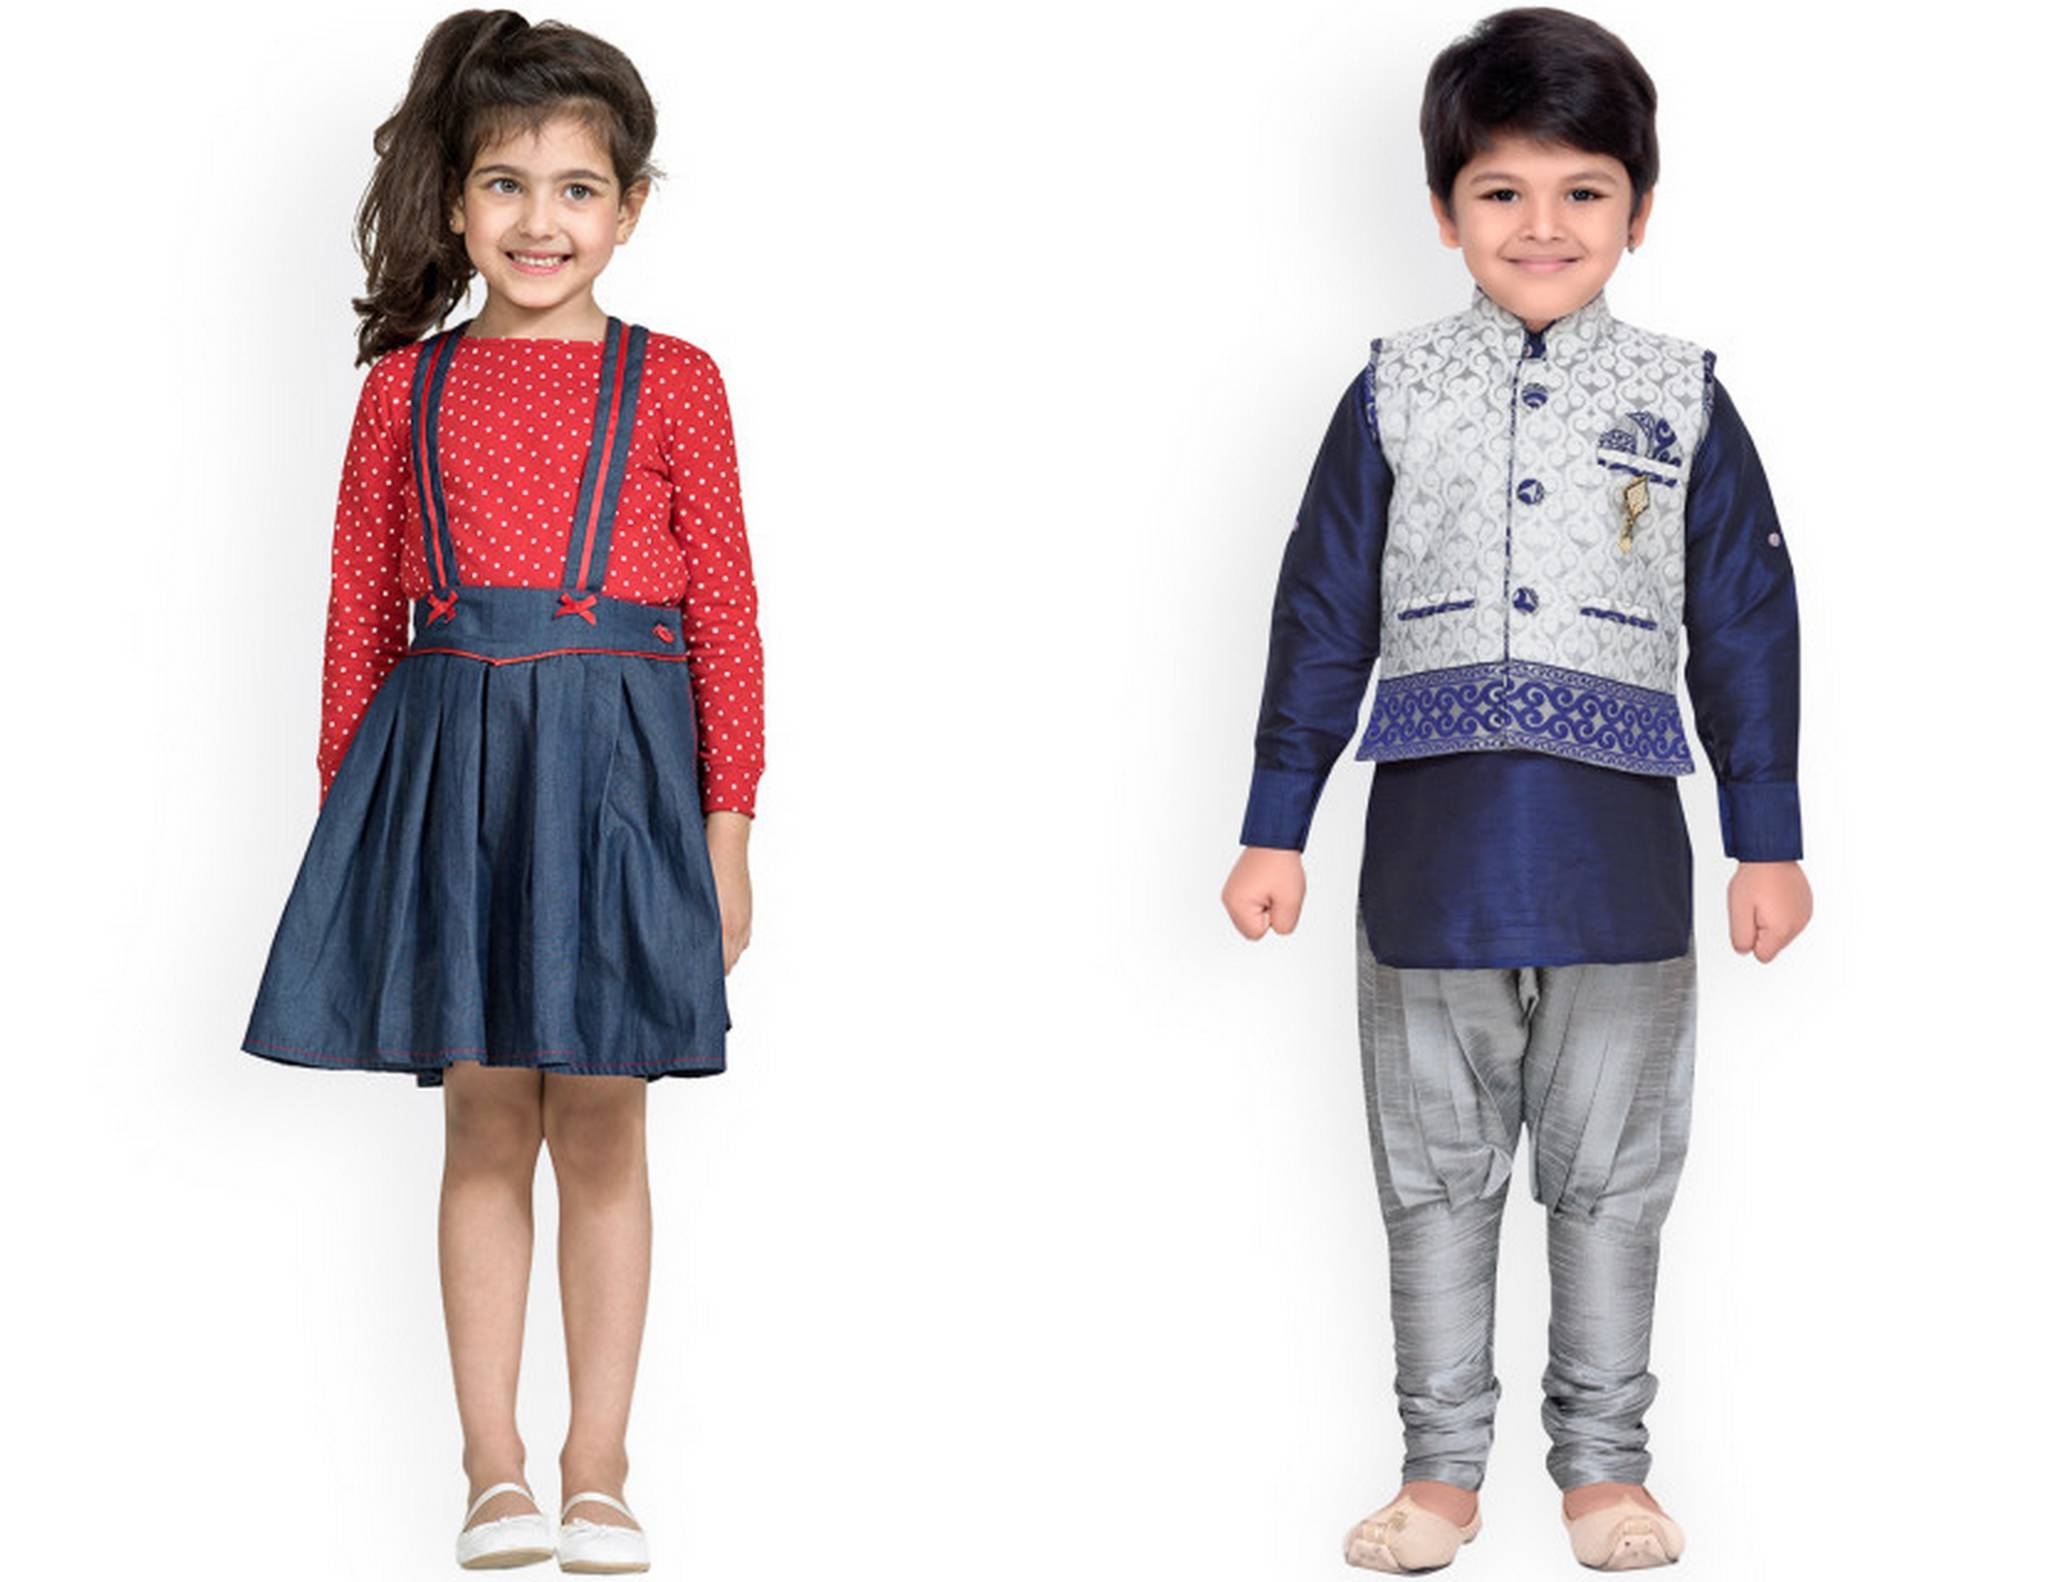 Kids, kids fashion, kids dresses, online shopping, kids online shopping, fashion, mommy blogger, colossal closet, myntra